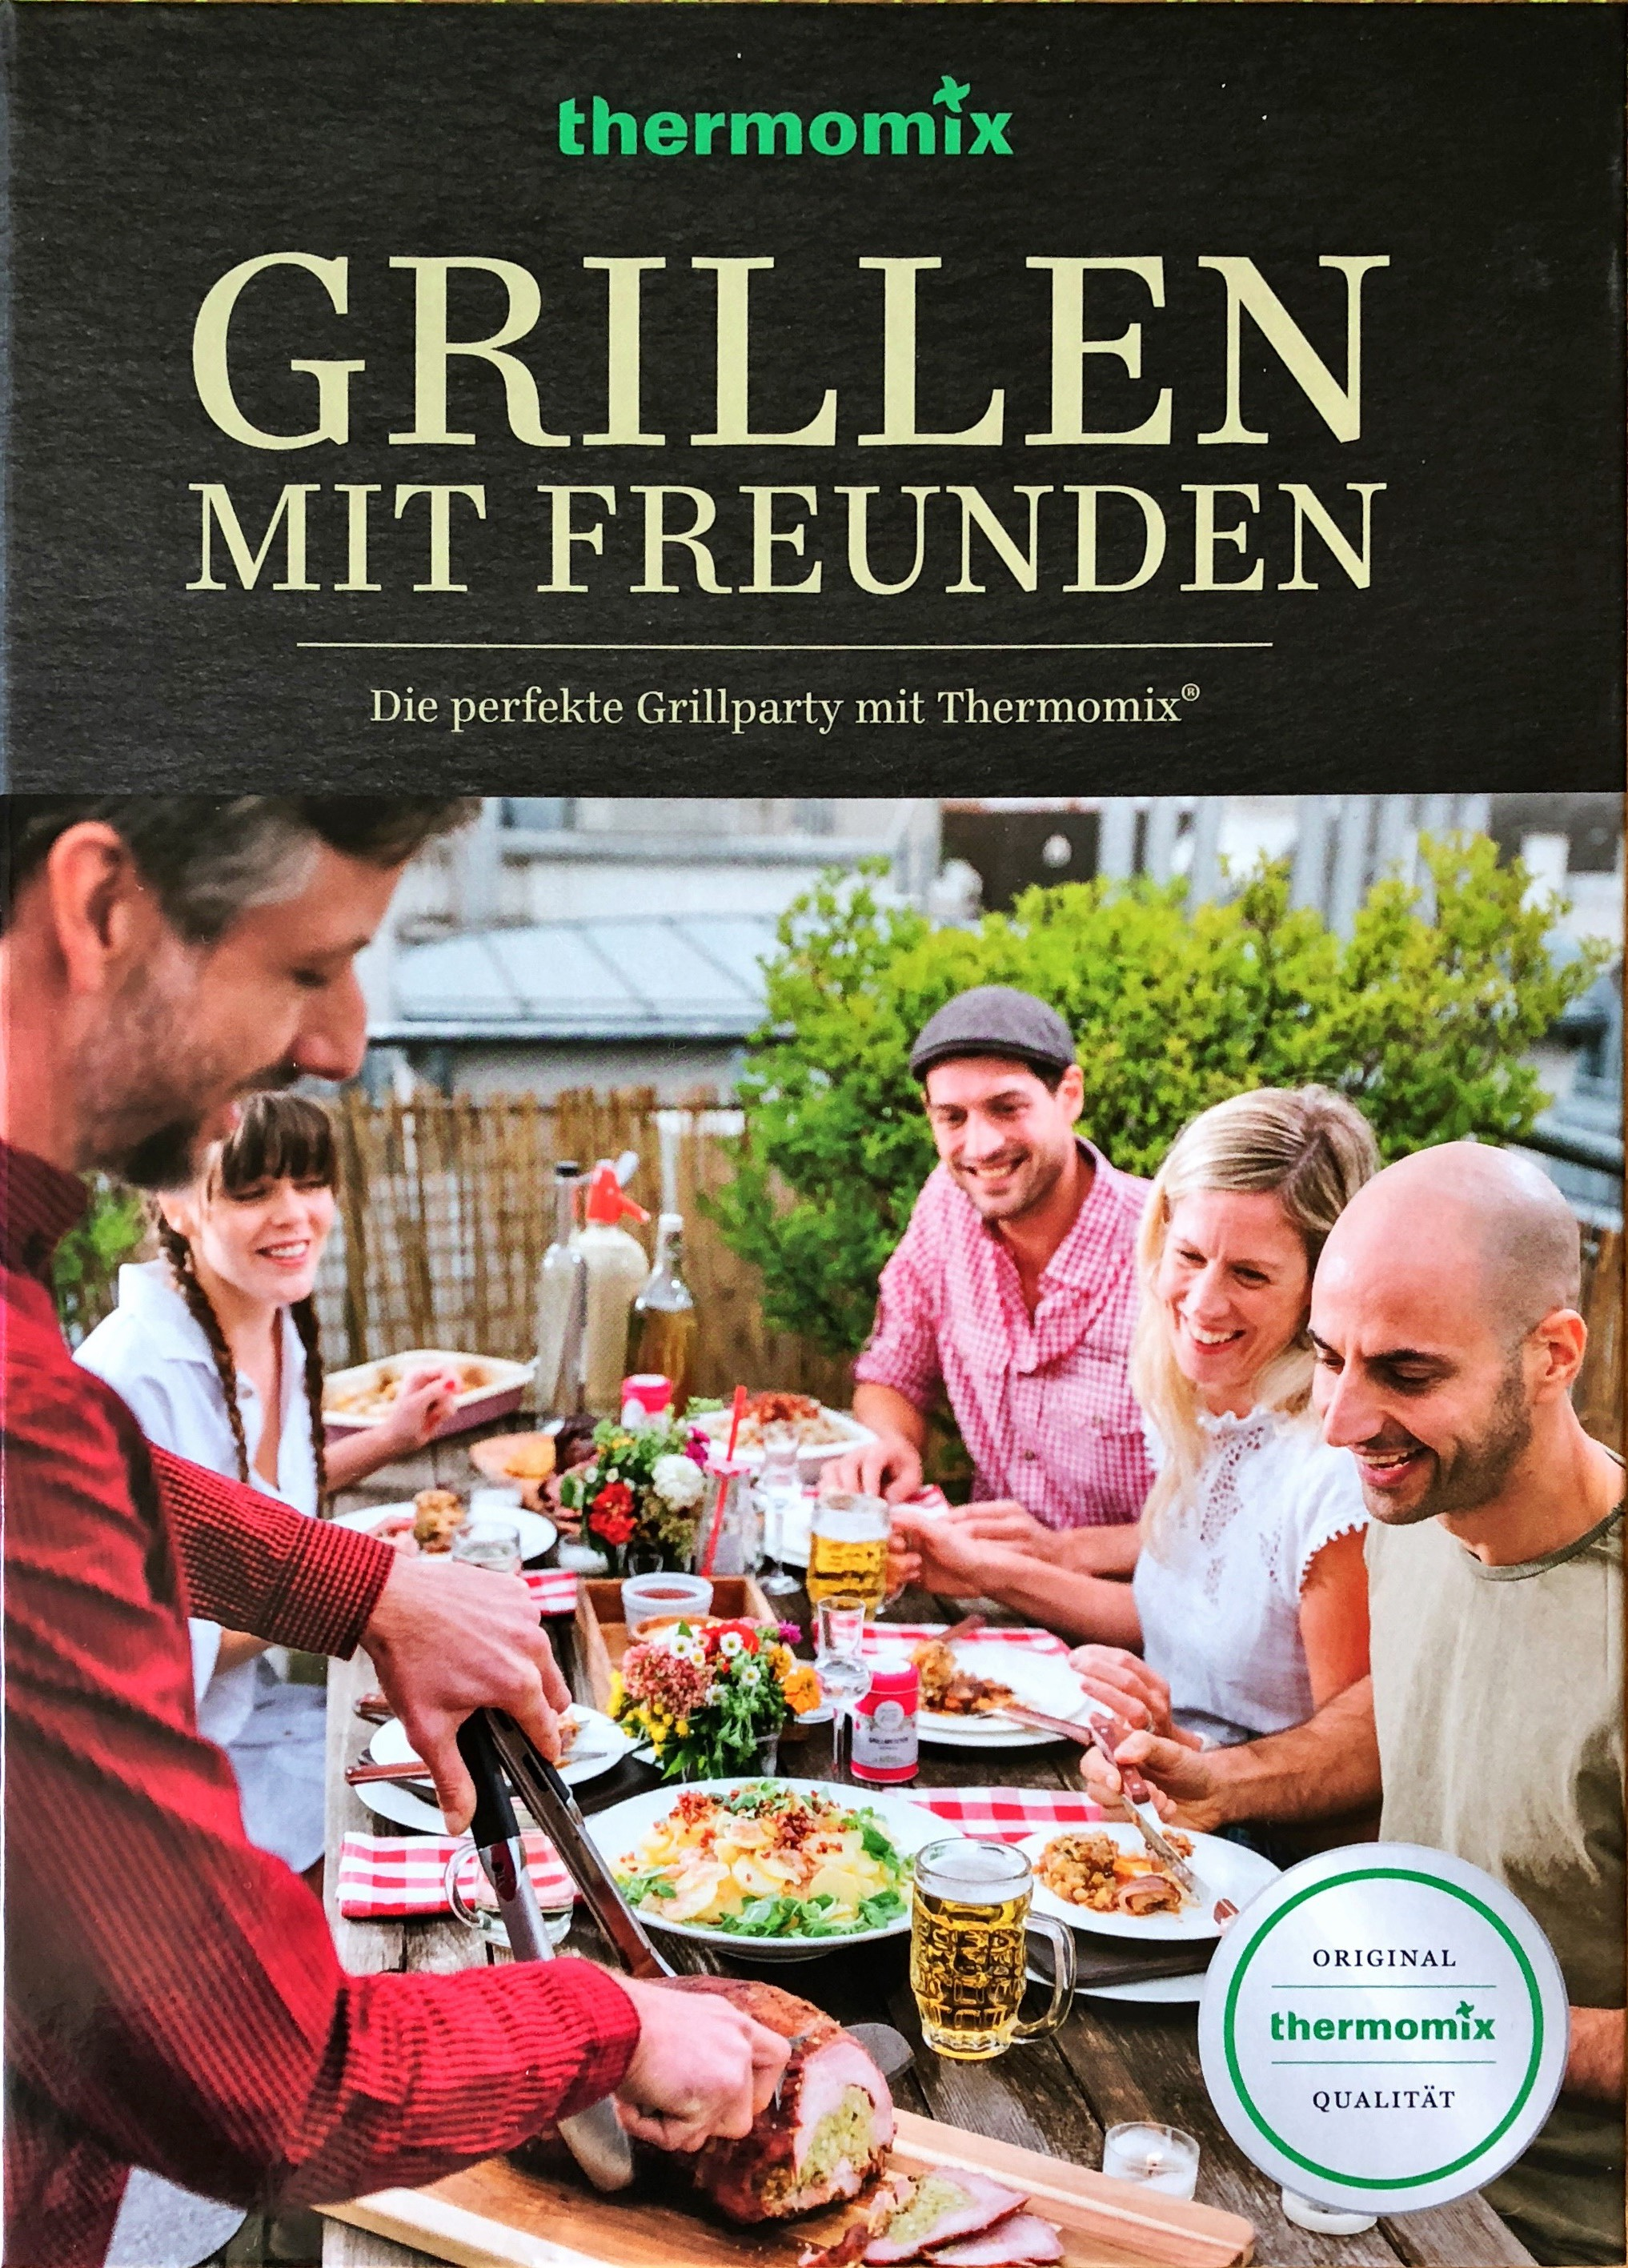 GrillenmitFreunden IMG 26461